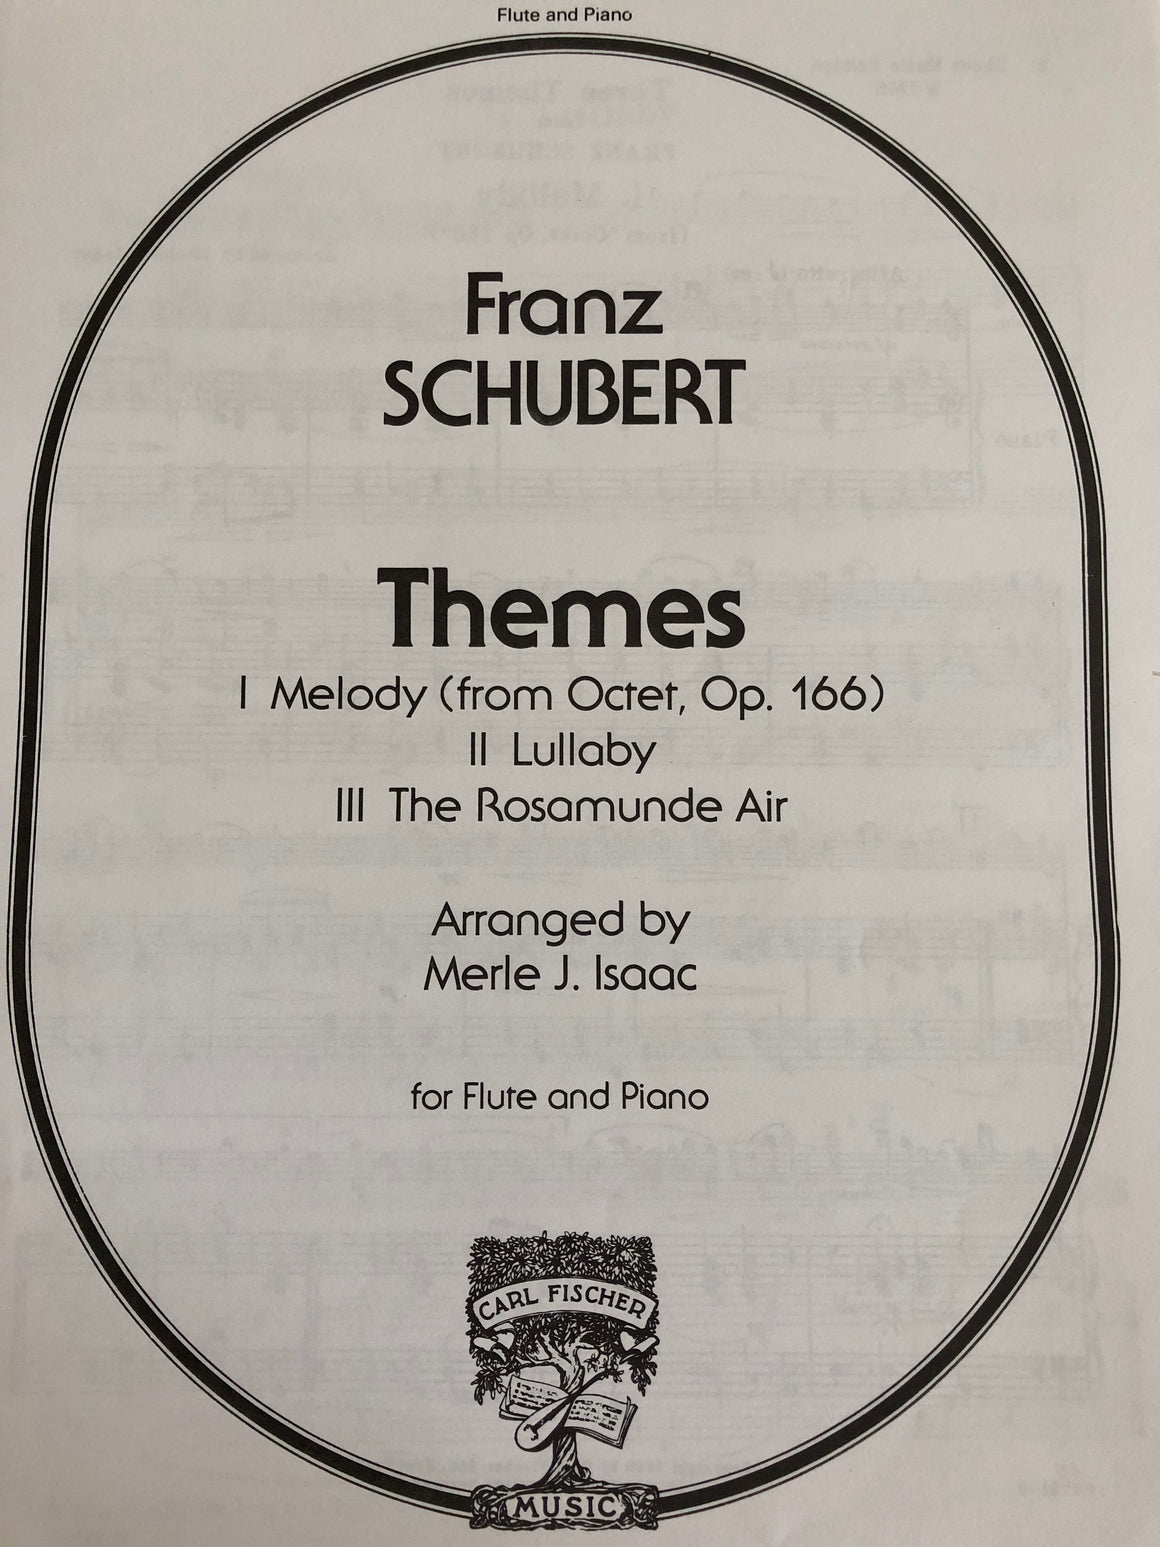 Themes (I. Melody, II. Lullaby, III. The Rosamunde Air) - Schubert/Arr. by Isaac